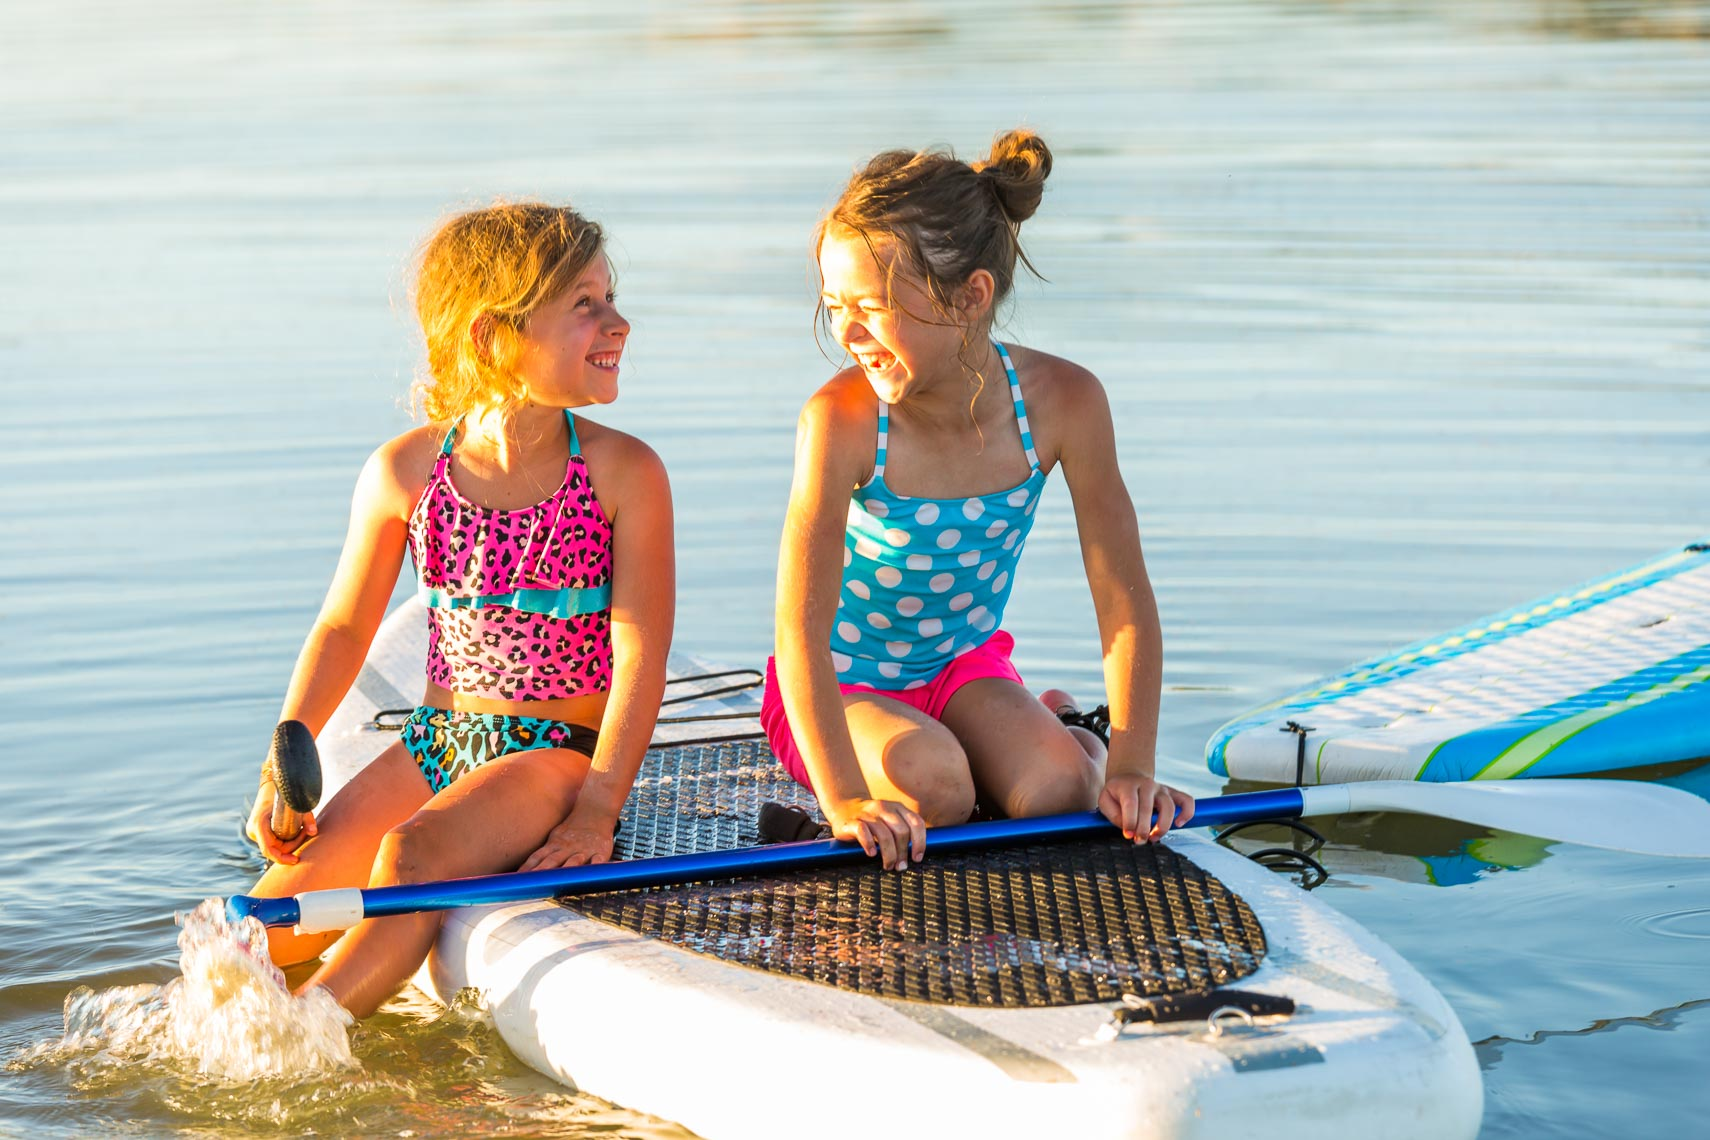 Girls Share Paddle Board Great Salt Lake | Michael DeYoung